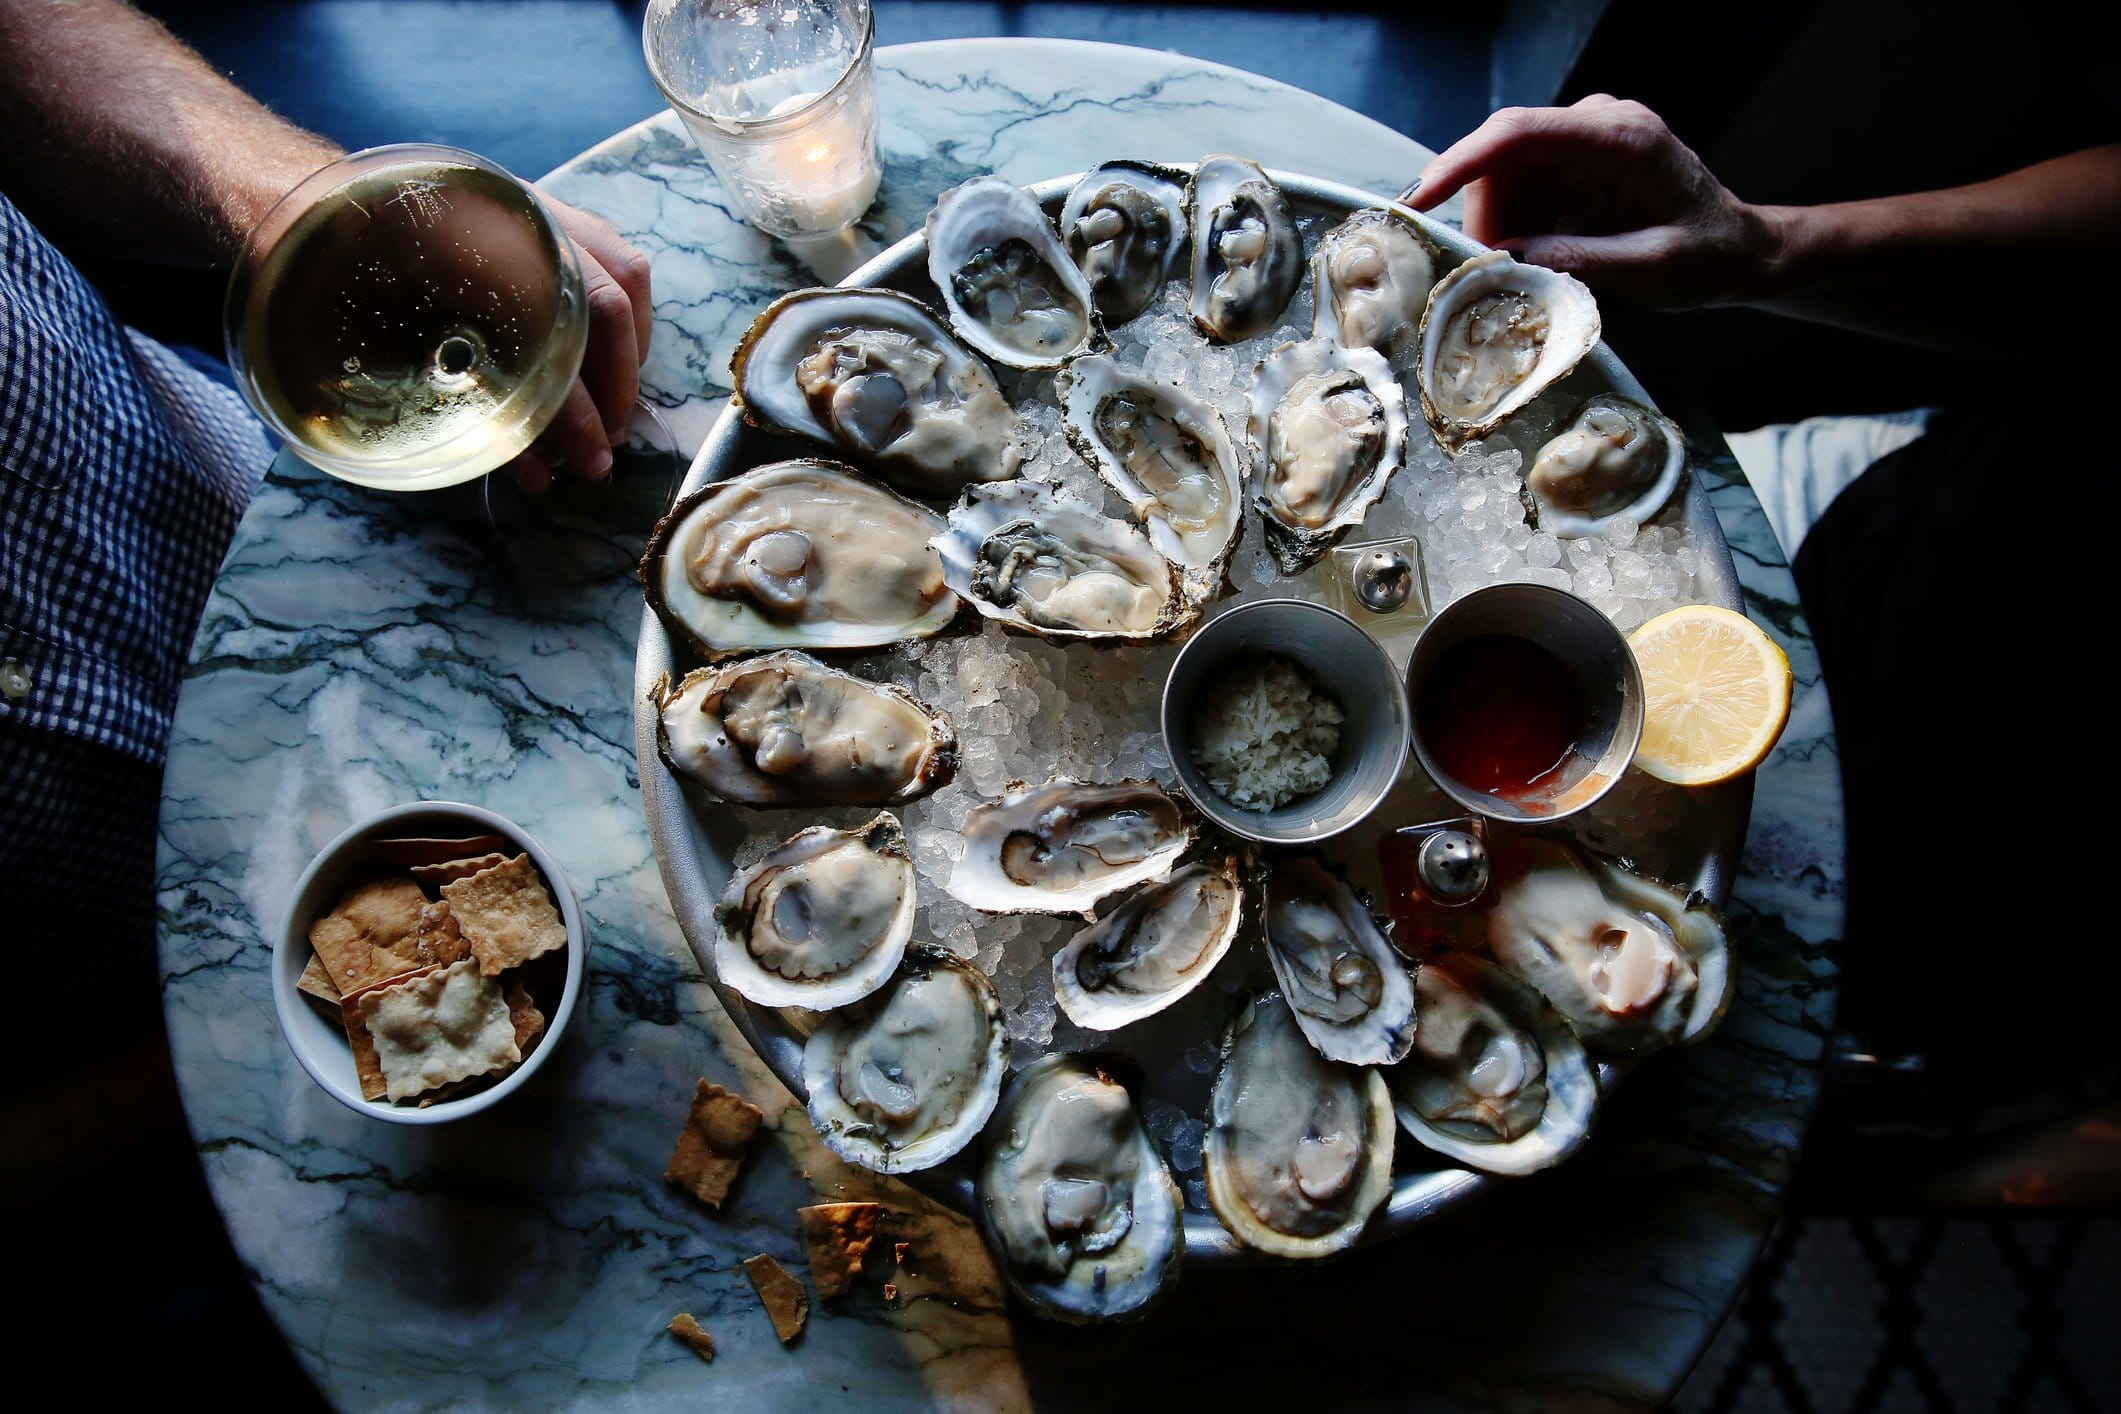 A platter of oysters on a table